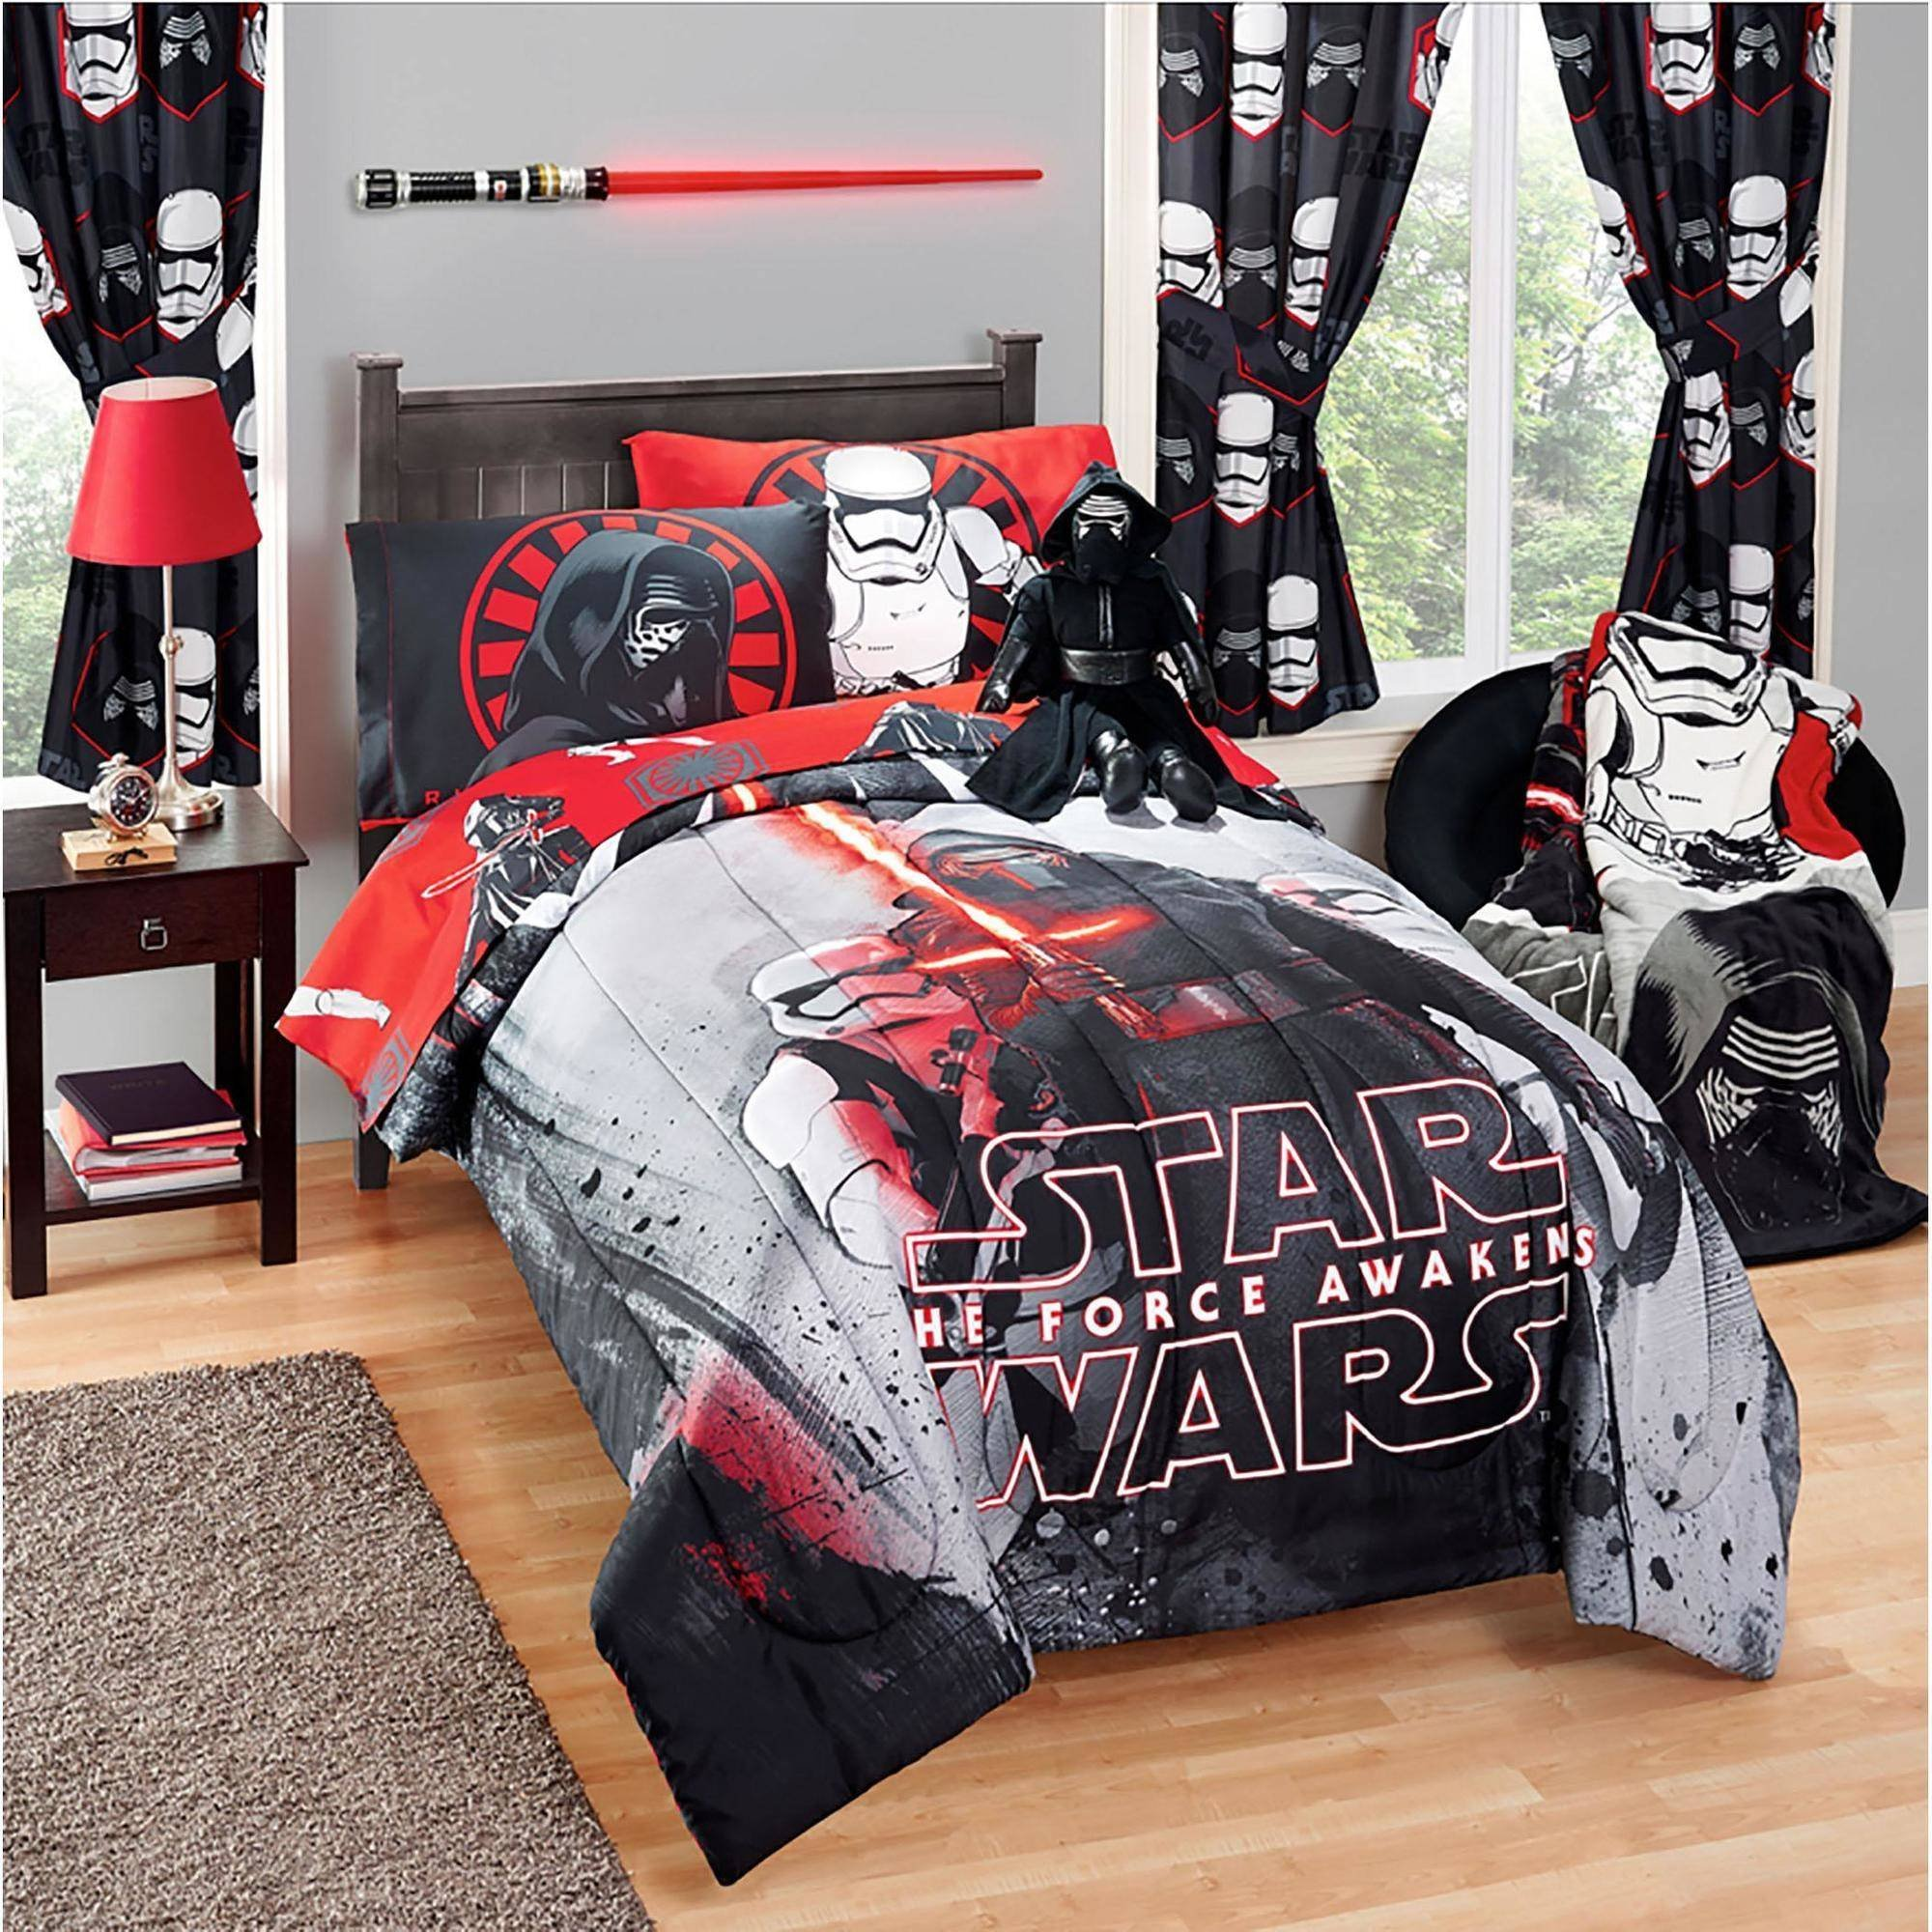 1 Piece Boys Star Wars Theme Comforter Twin/Full, Kids Starwars The Movie Graphic Bedding, Multi Color Animated Character Darth Vader Yoda Chewbacca Storm Trooper Themed Pattern Red Black, Vibrant